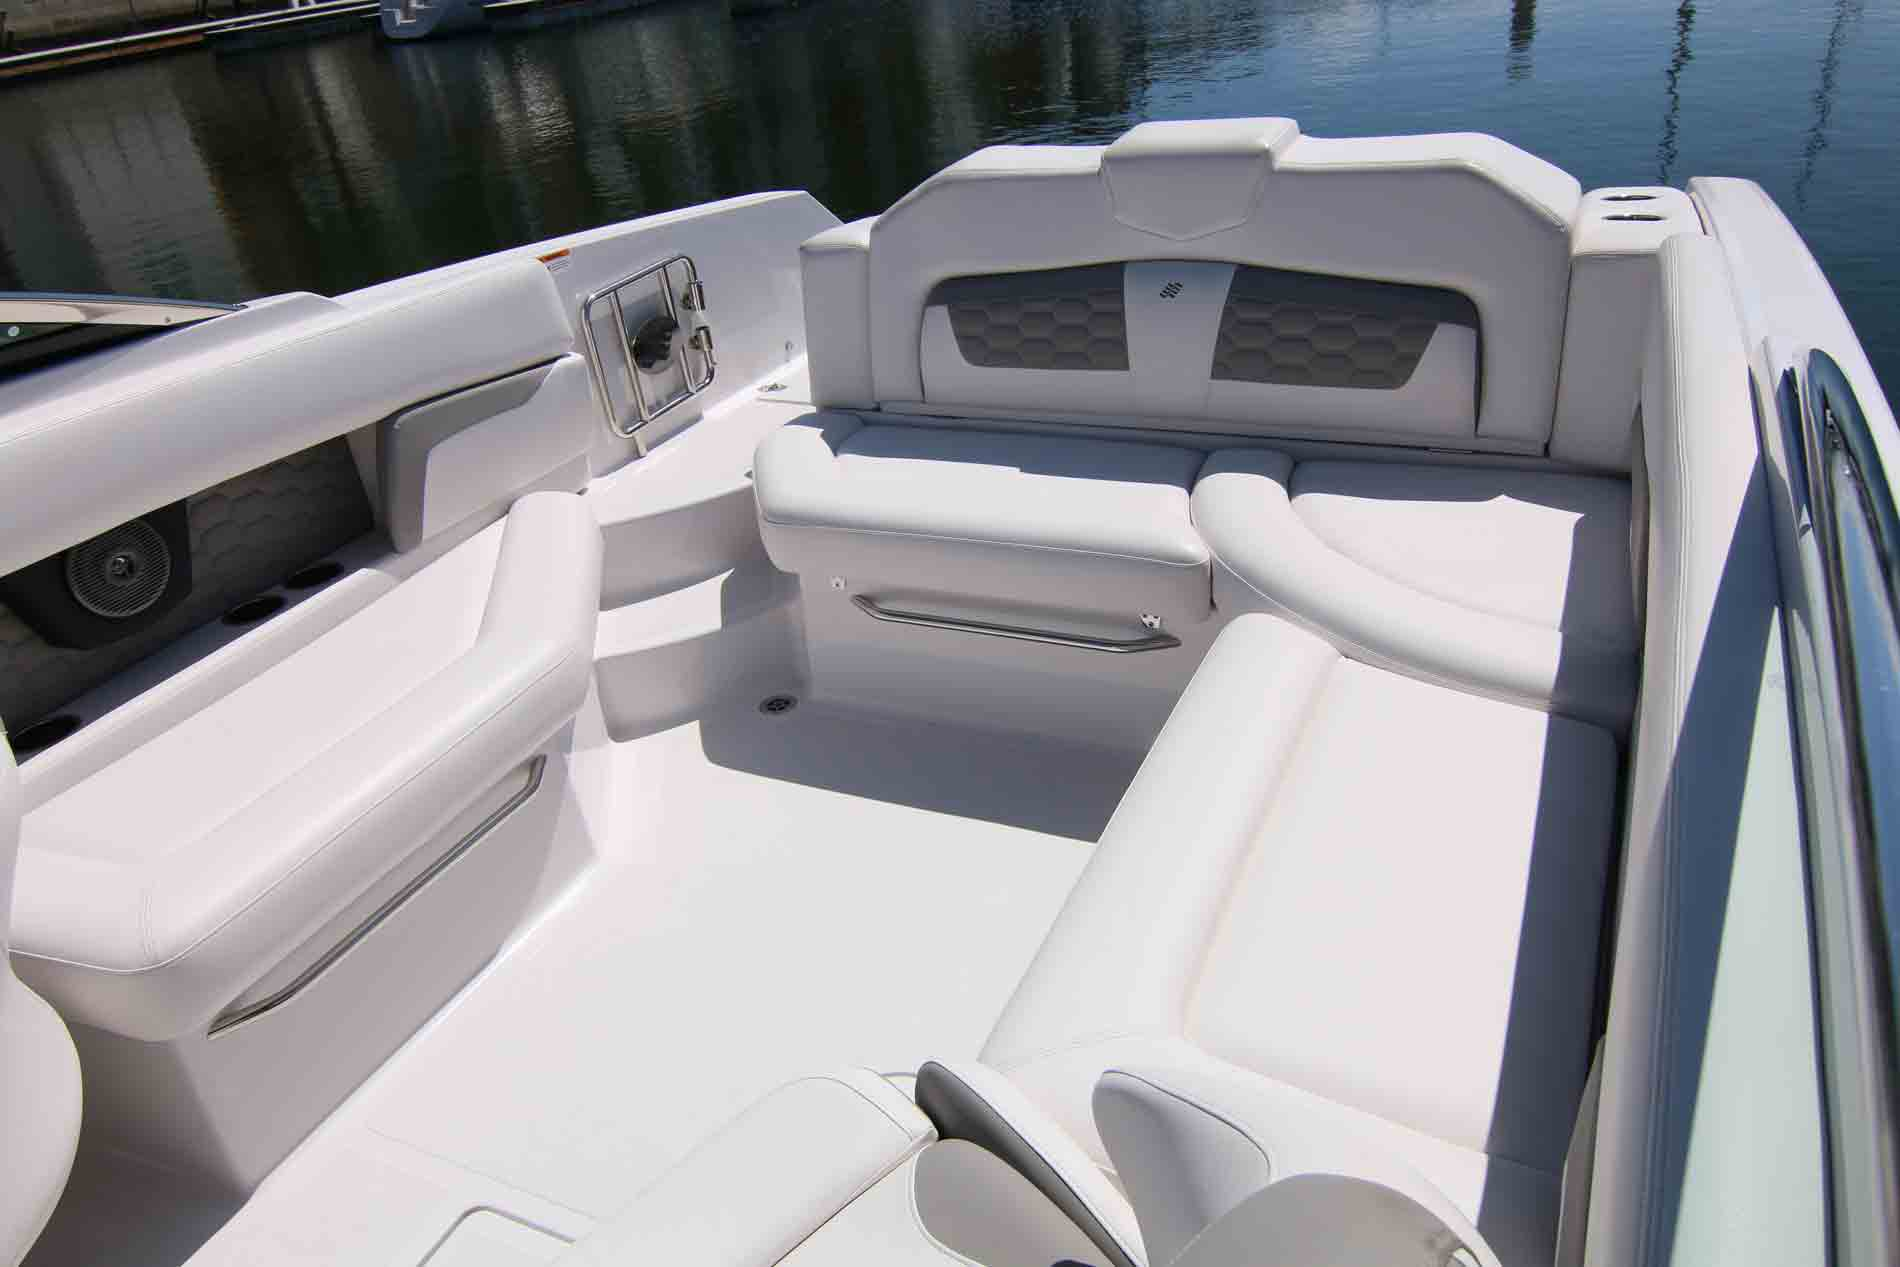 marina-del-rey-boat-rental-with-tons-of-room